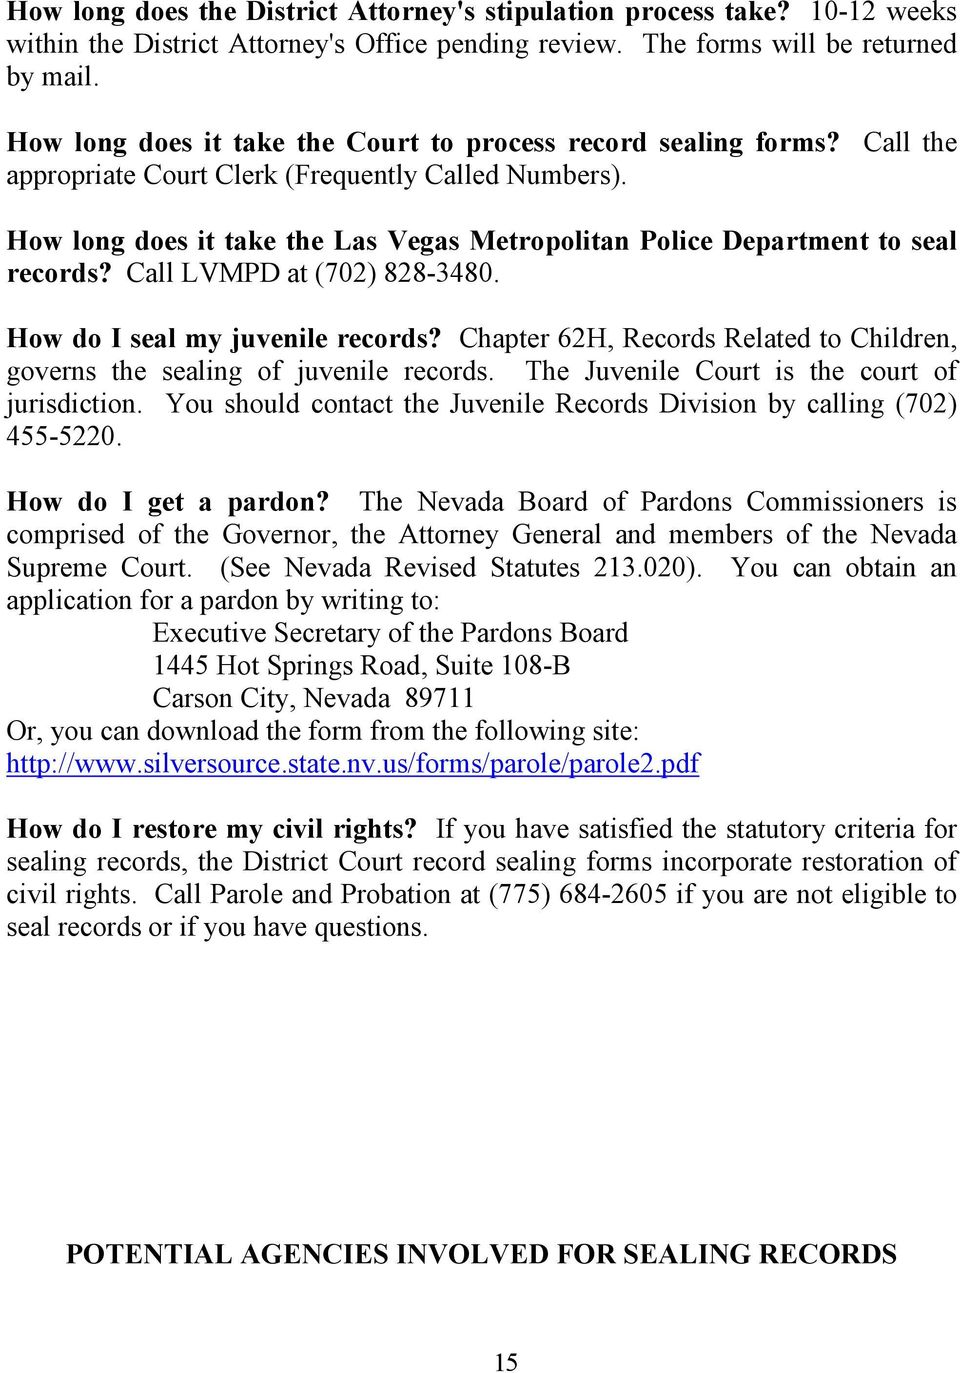 How long does it take the Las Vegas Metropolitan Police Department to seal records? Call LVMPD at (702) 828-3480. How do I seal my juvenile records?